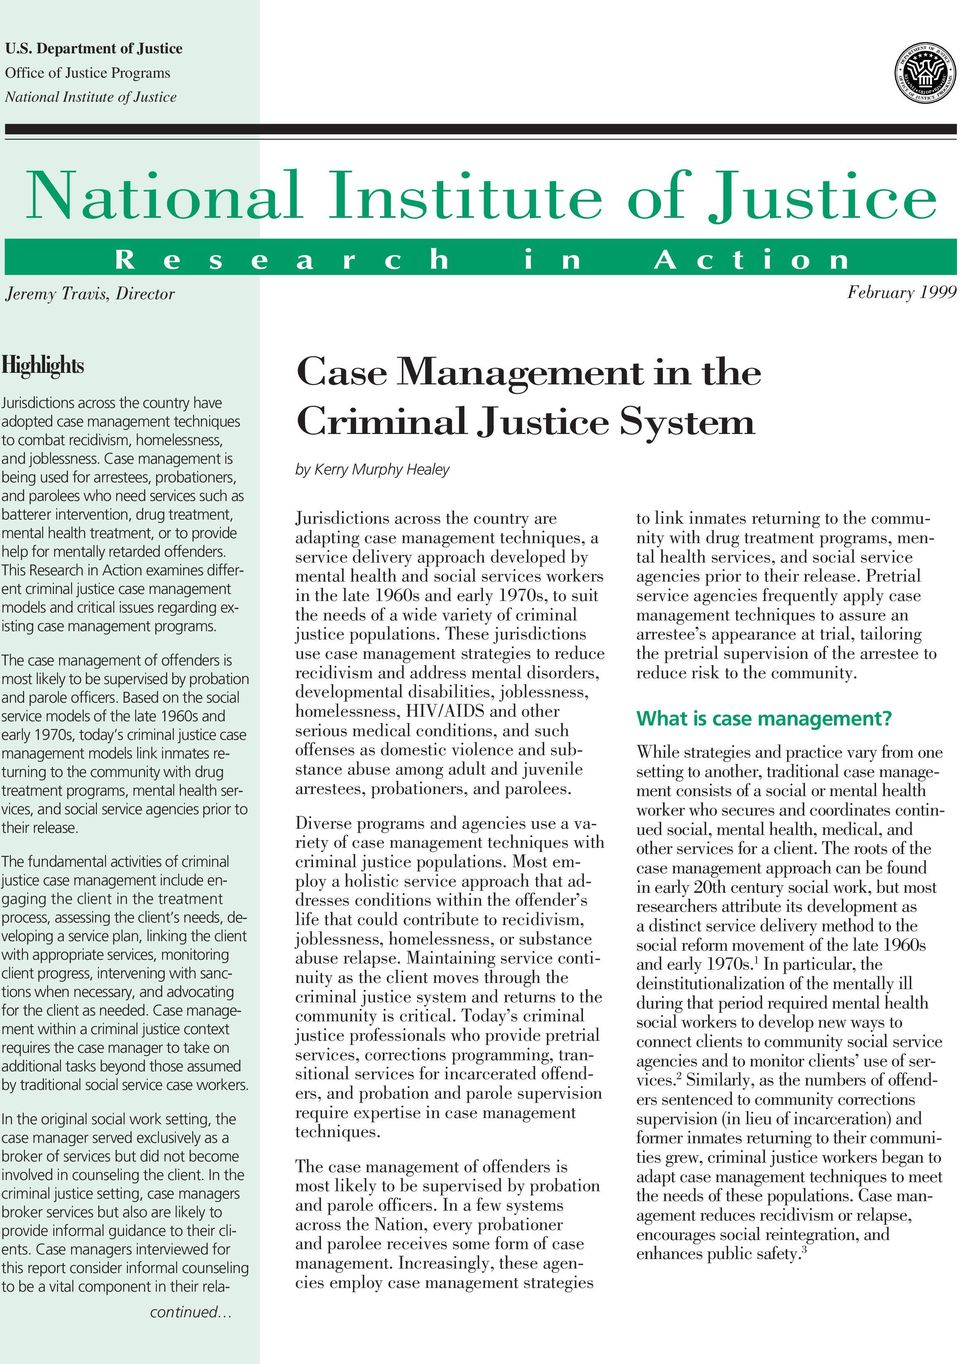 Case management is being used for arrestees, probationers, and parolees who need services such as batterer intervention, drug treatment, mental health treatment, or to provide help for mentally